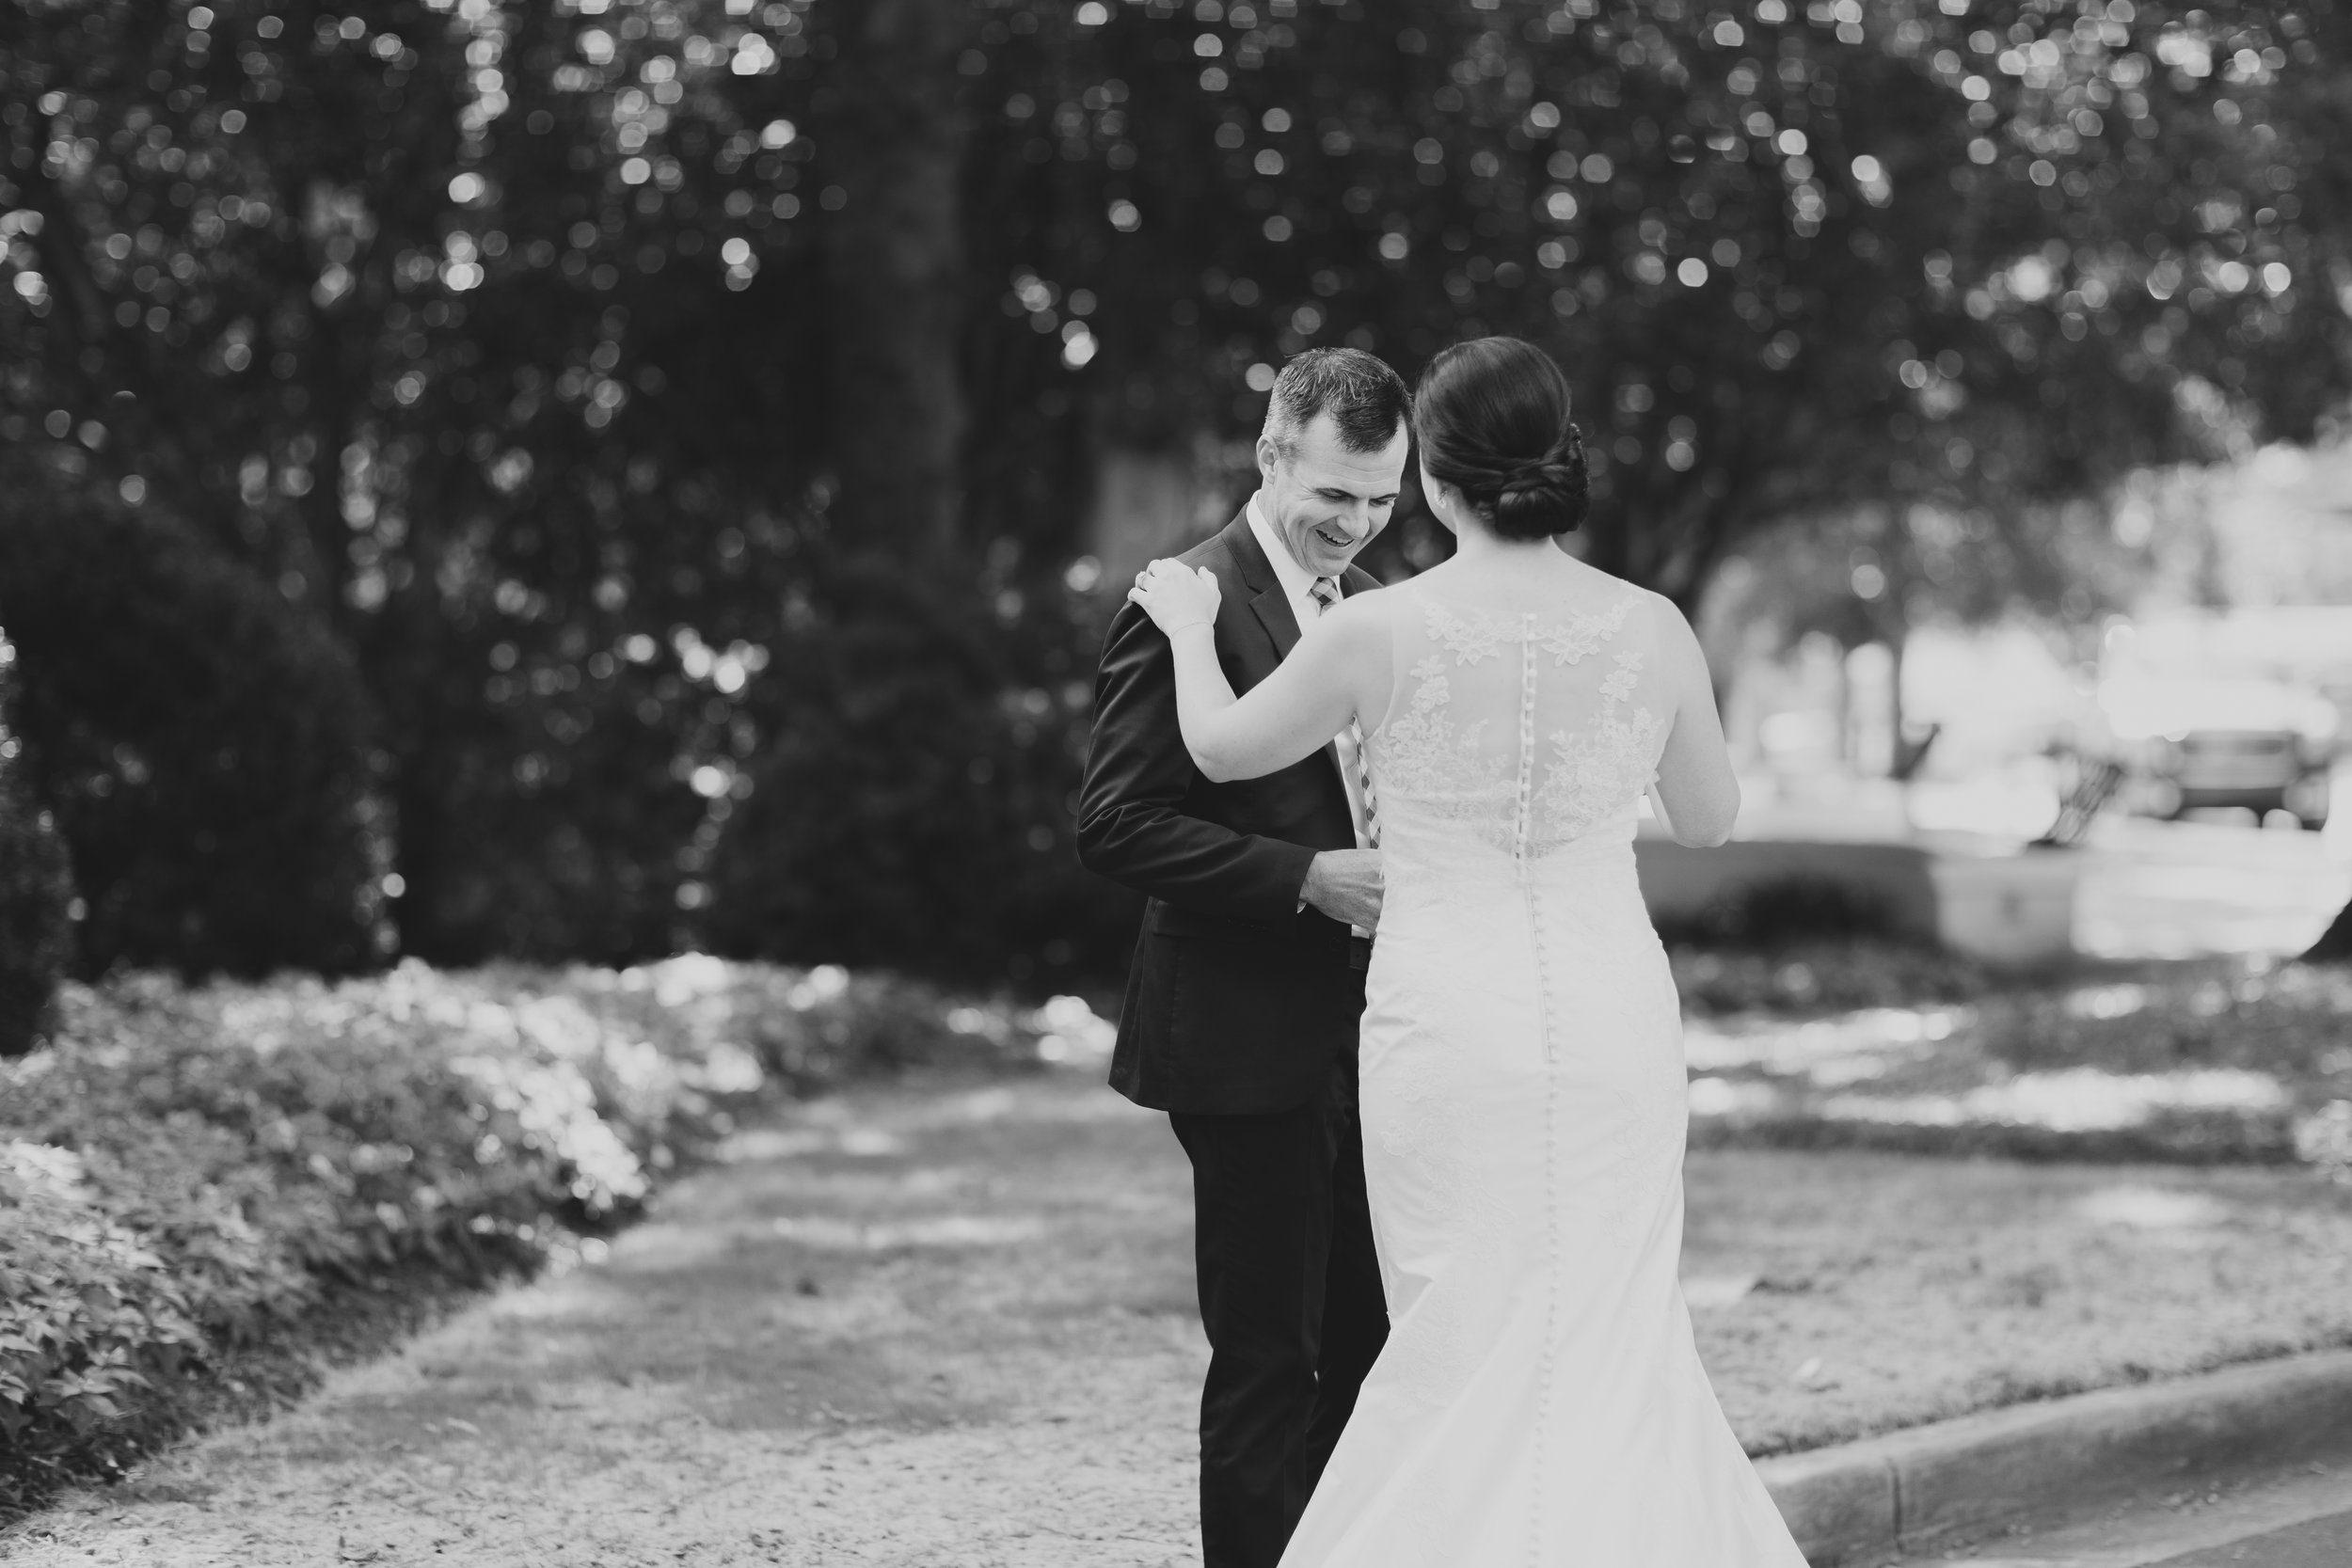 CooksonWedding - Alicia White Photography-107.jpg